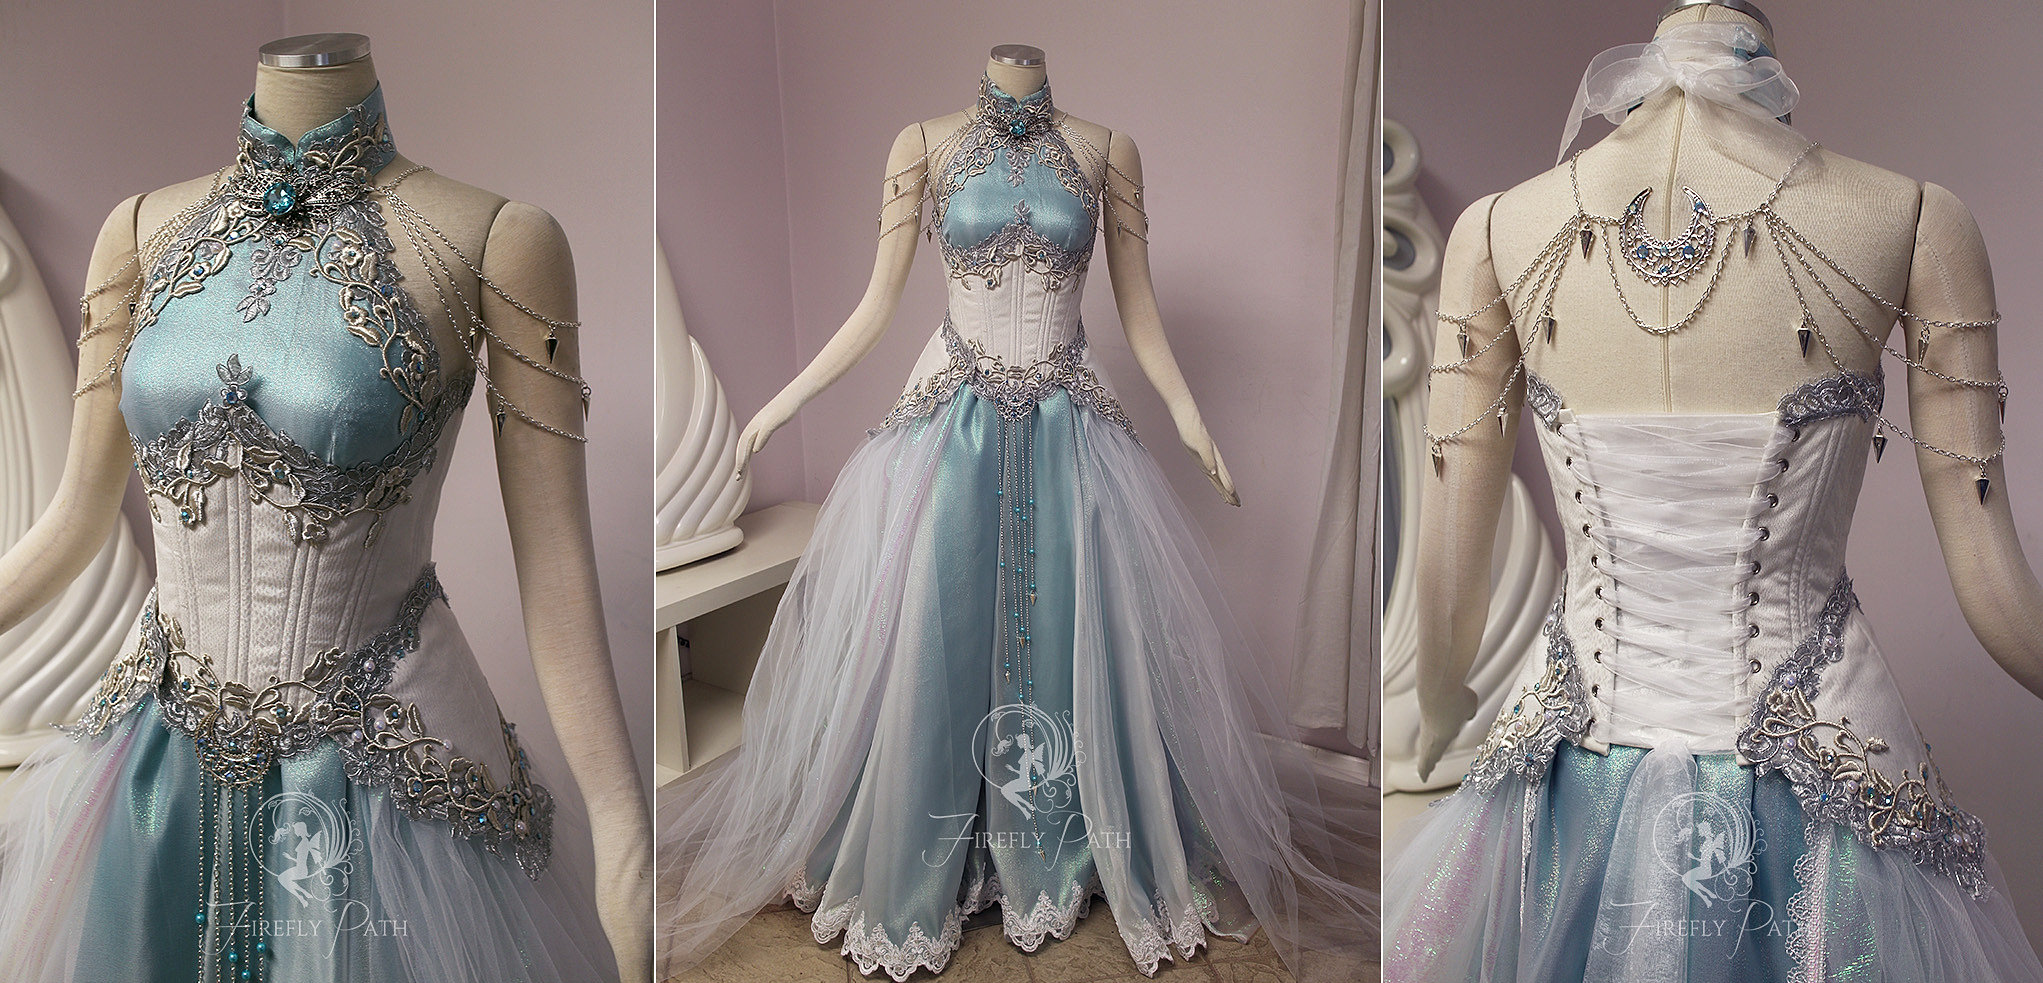 Fireflypathbridal moon light elf gown for Elven inspired wedding dresses